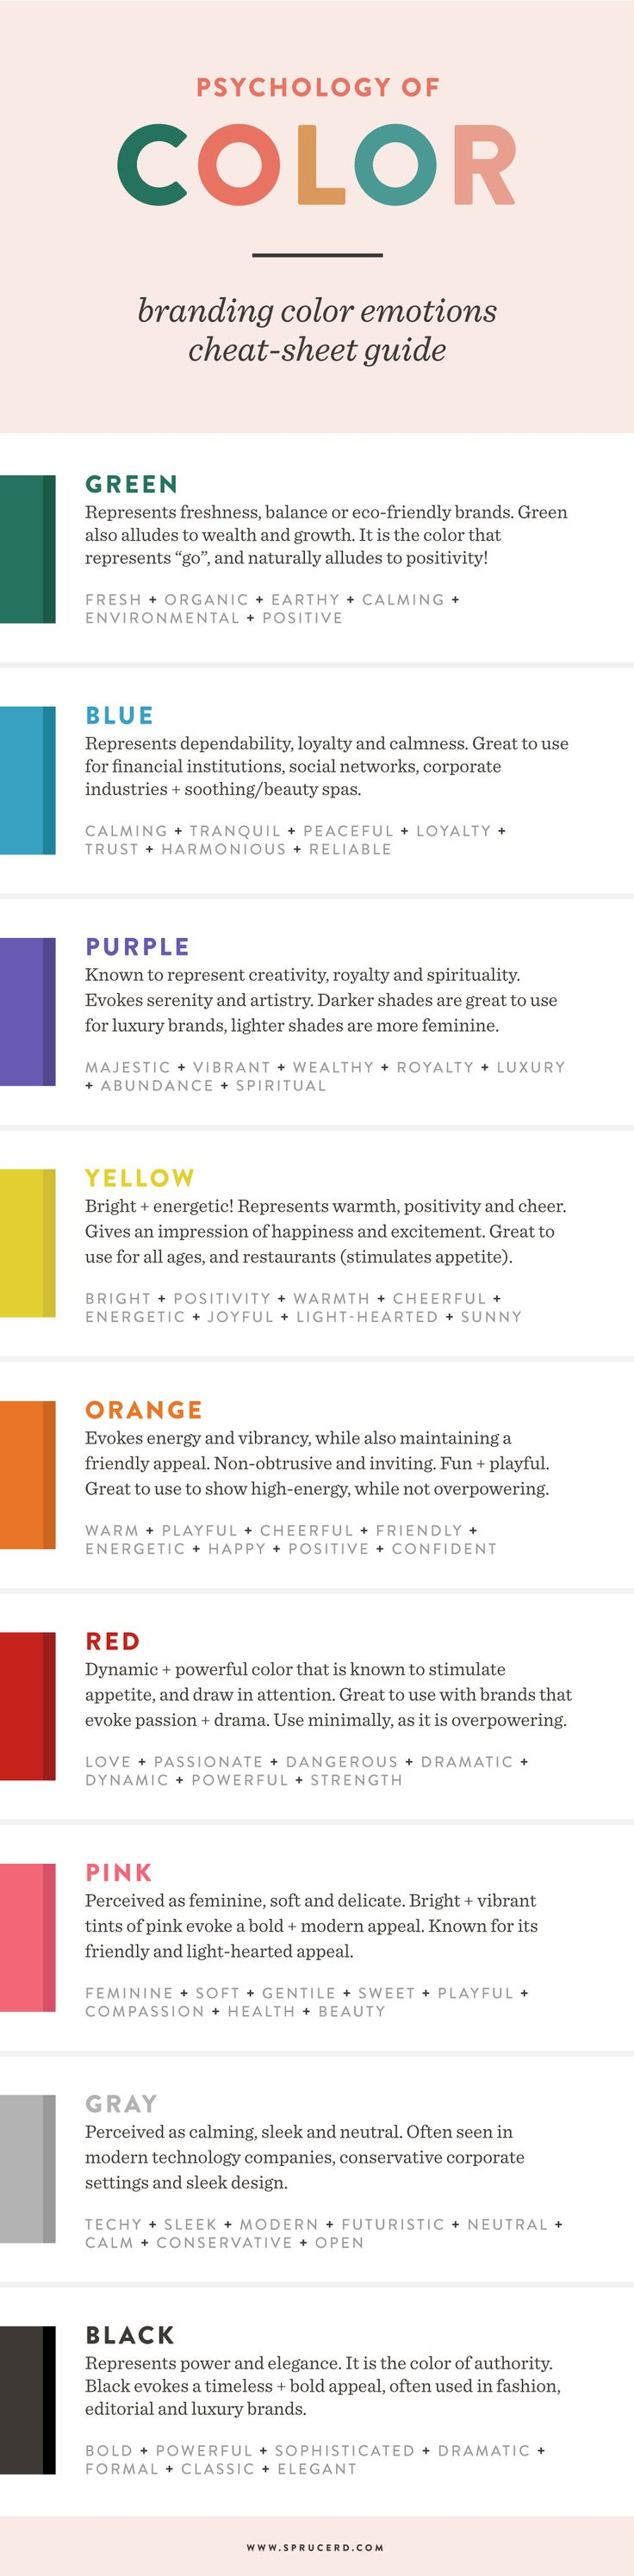 Psychology of Color in Branding | Spruce Rd. #branding #color #psychology